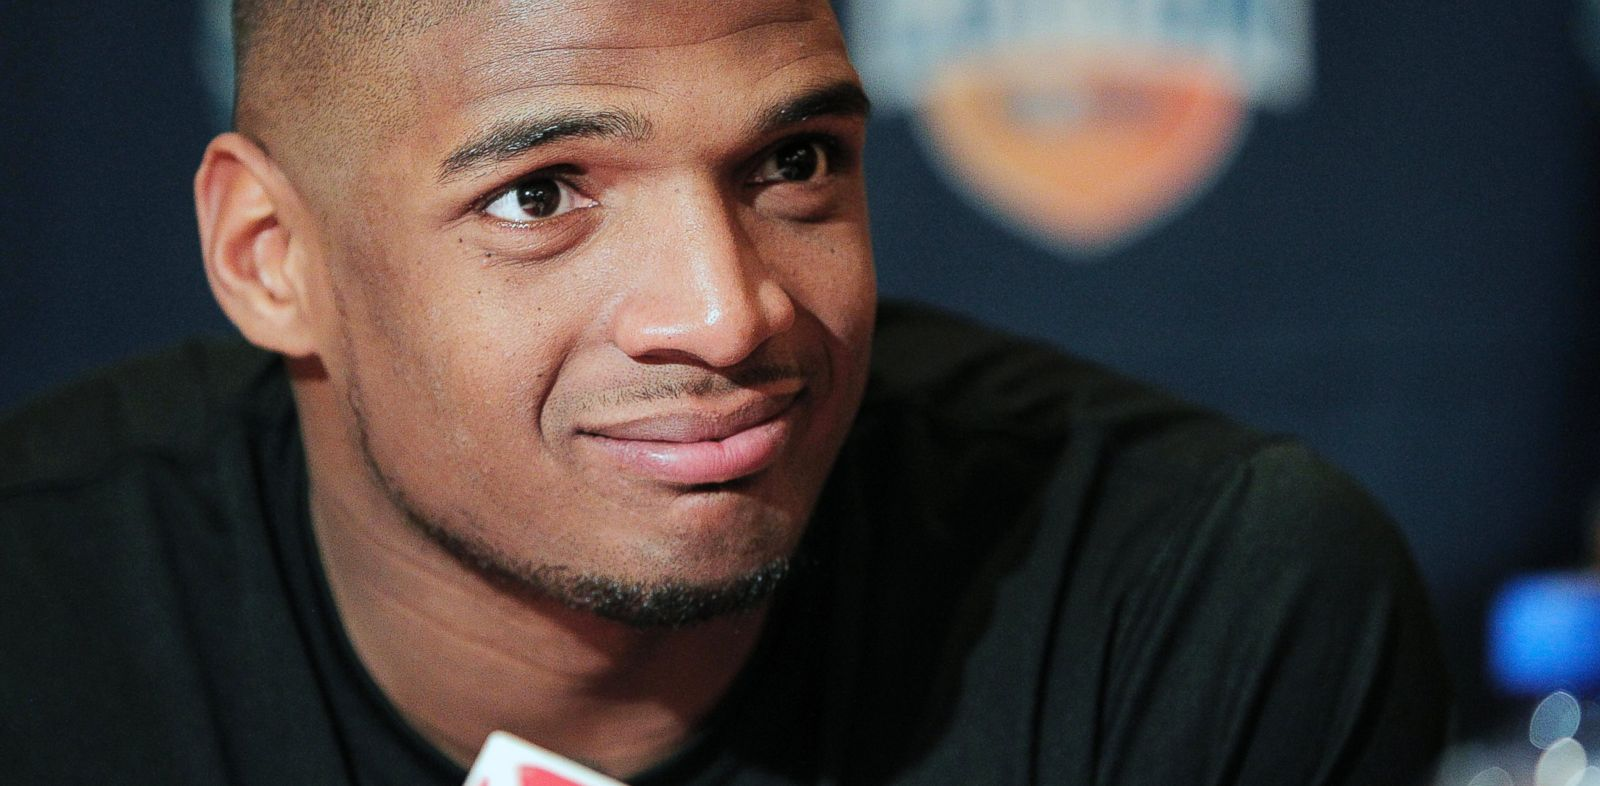 PHOTO: In this Jan. 1, 2014, file photo, Missouri senior defensive lineman Michael Sam speaks to the media during an NCAA college football news conference in Irving, Texas.